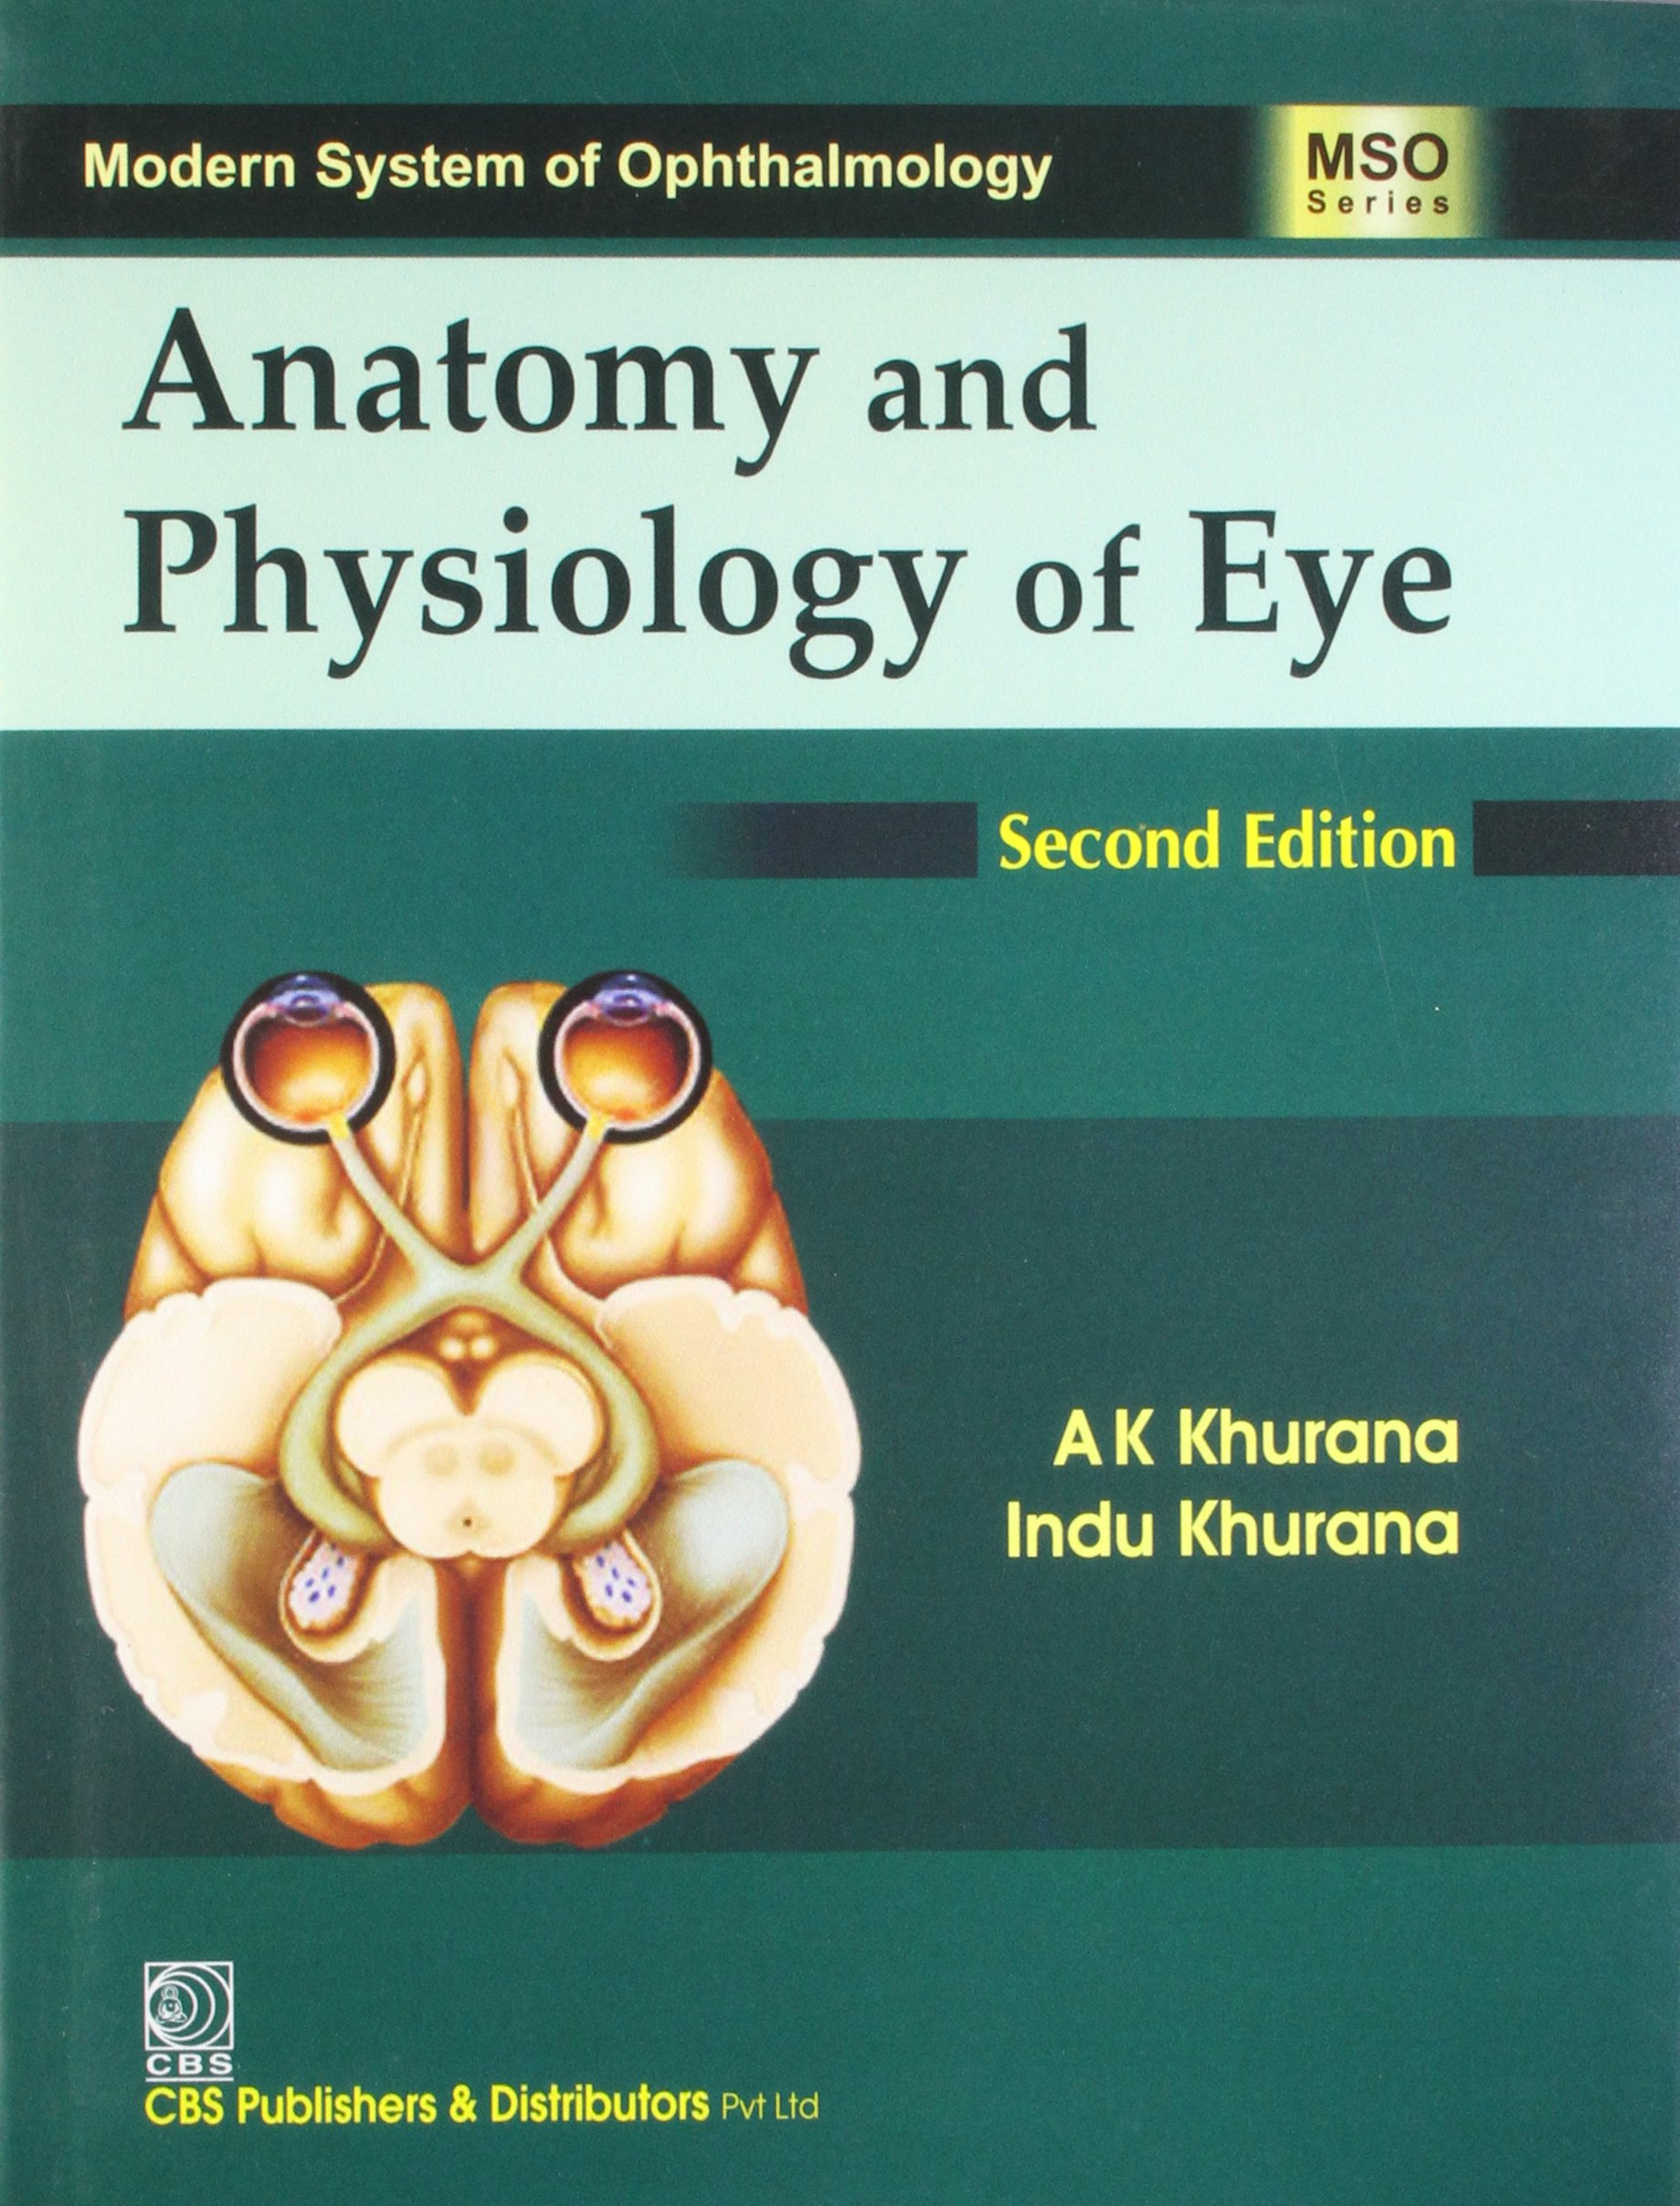 Anatomy & Physiology of Eye: Amazon.co.uk: Khurana: 9788123912677: Books